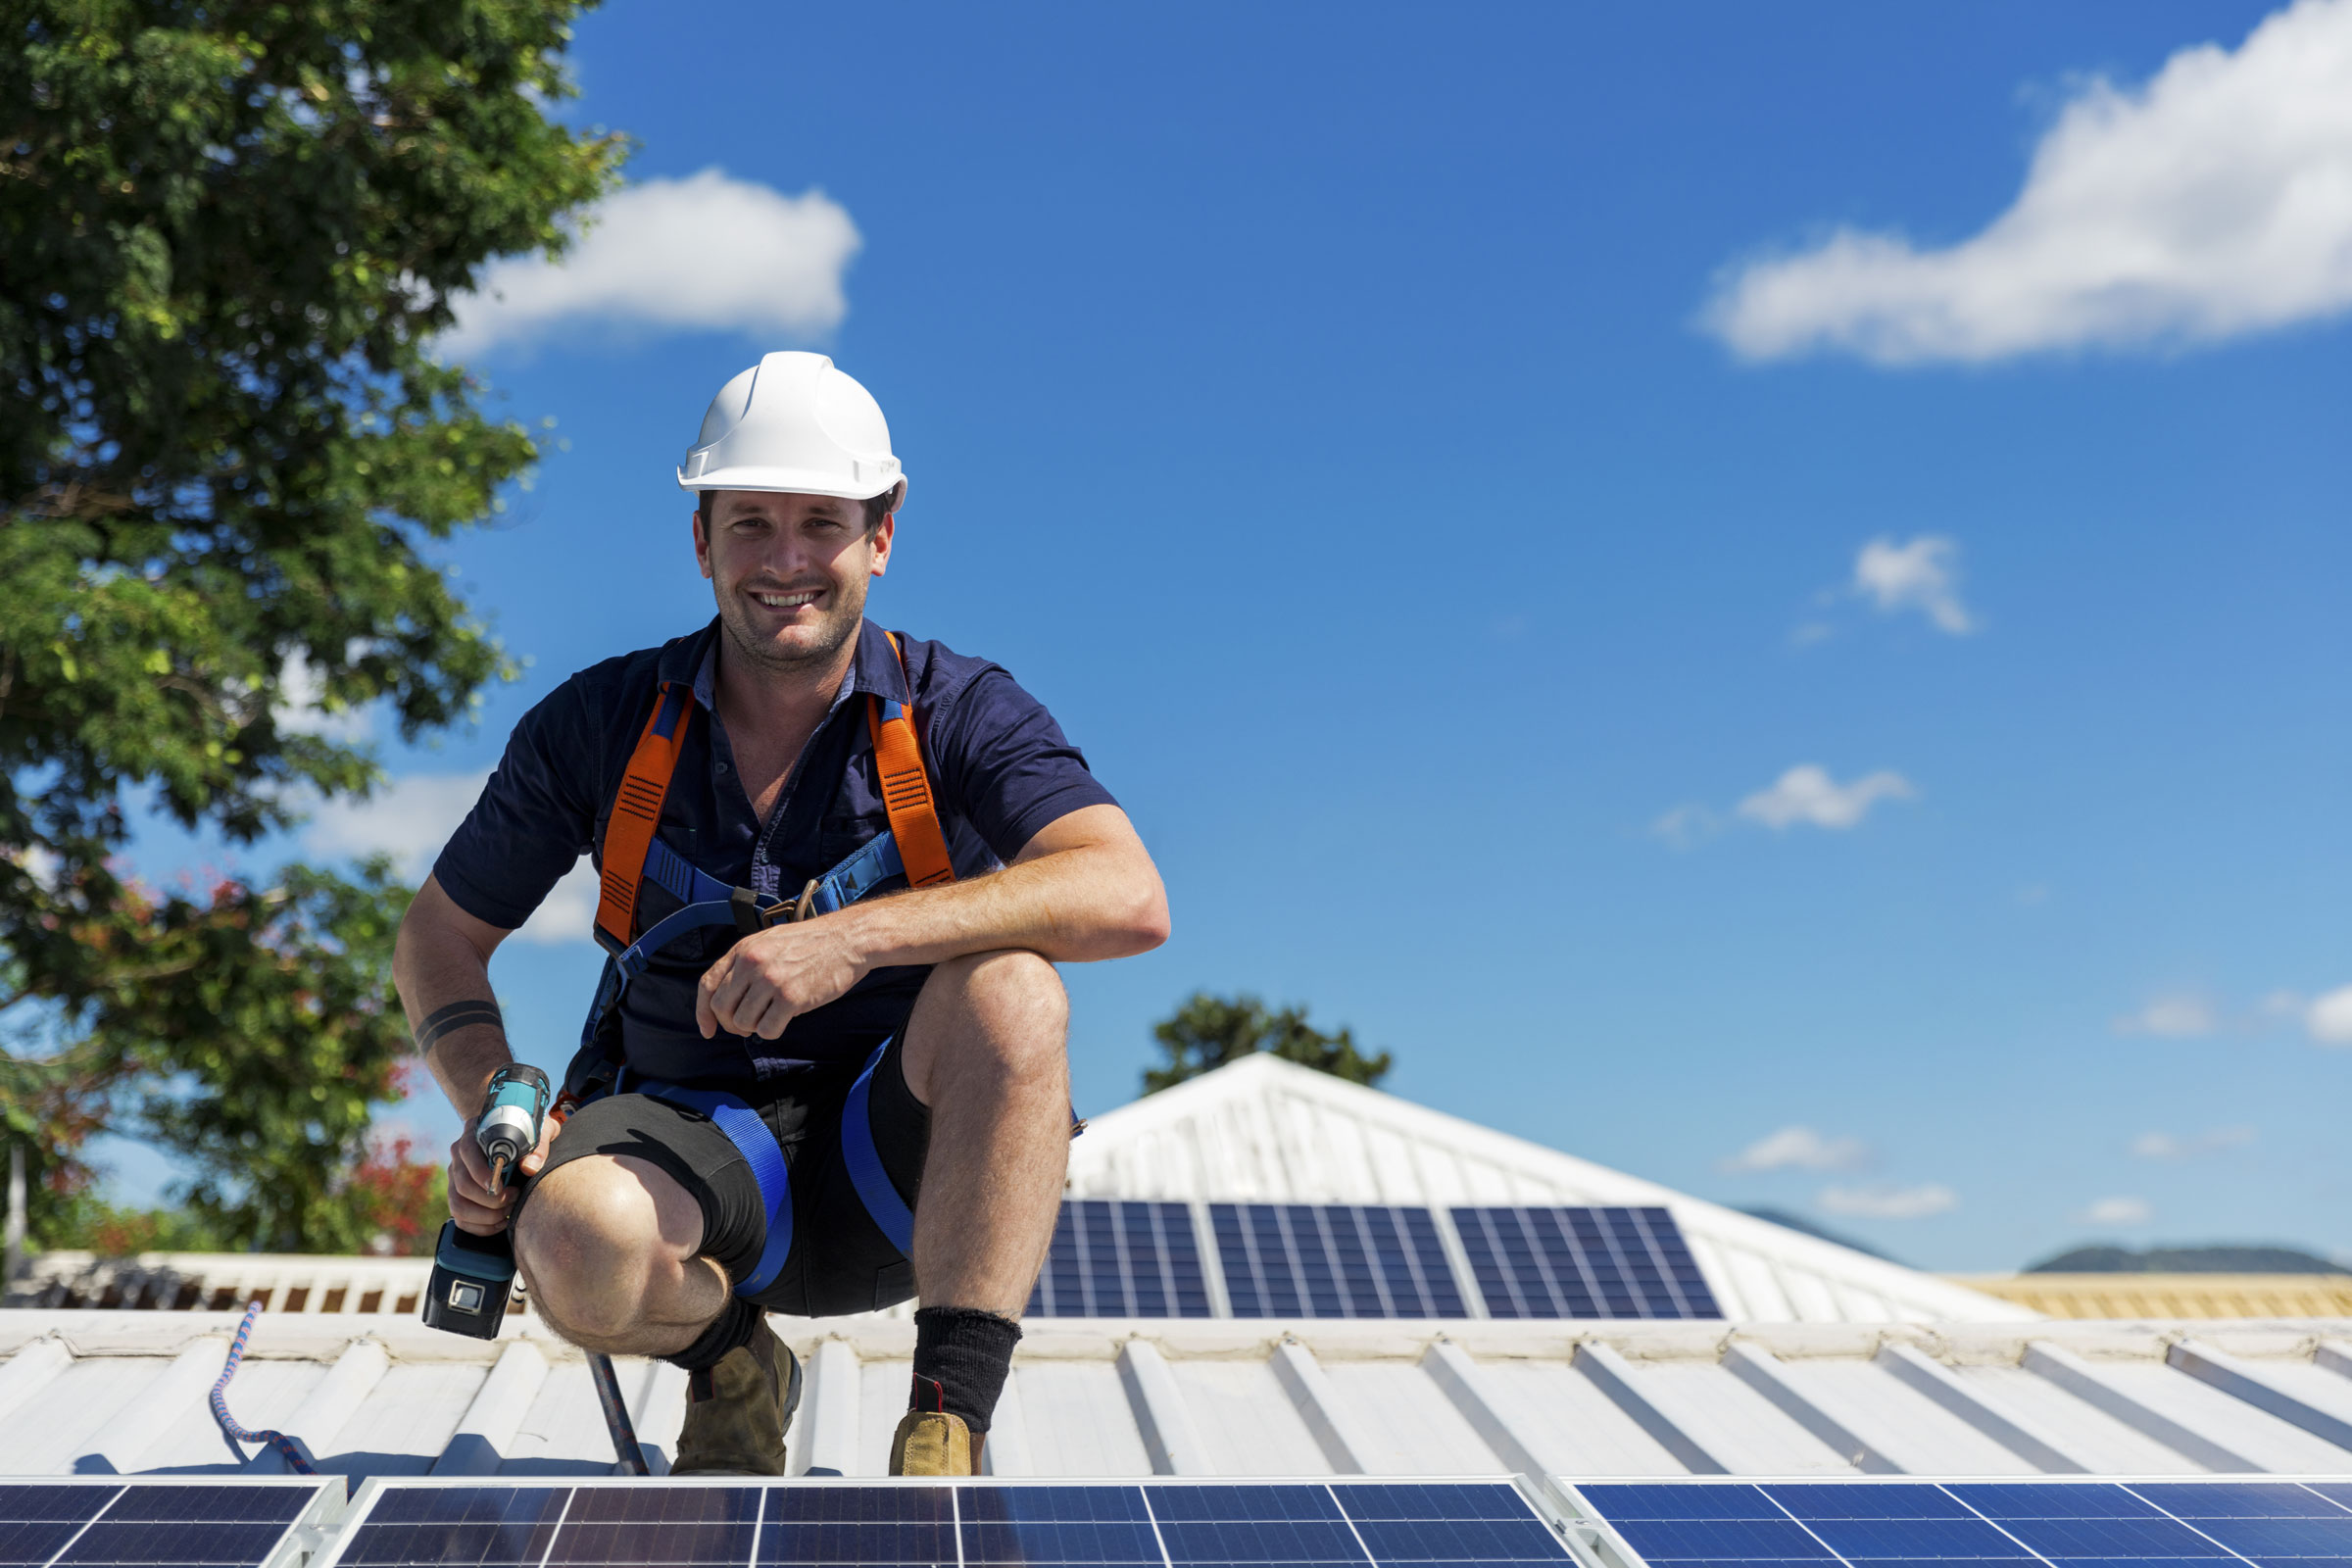 We have worked hard to find the best solar installers in South Africa. We have a number of accredited solar suppliers in Gauteng and The Western Cape. Visit our website to find more info about Spark's solar solution for home and businesses.